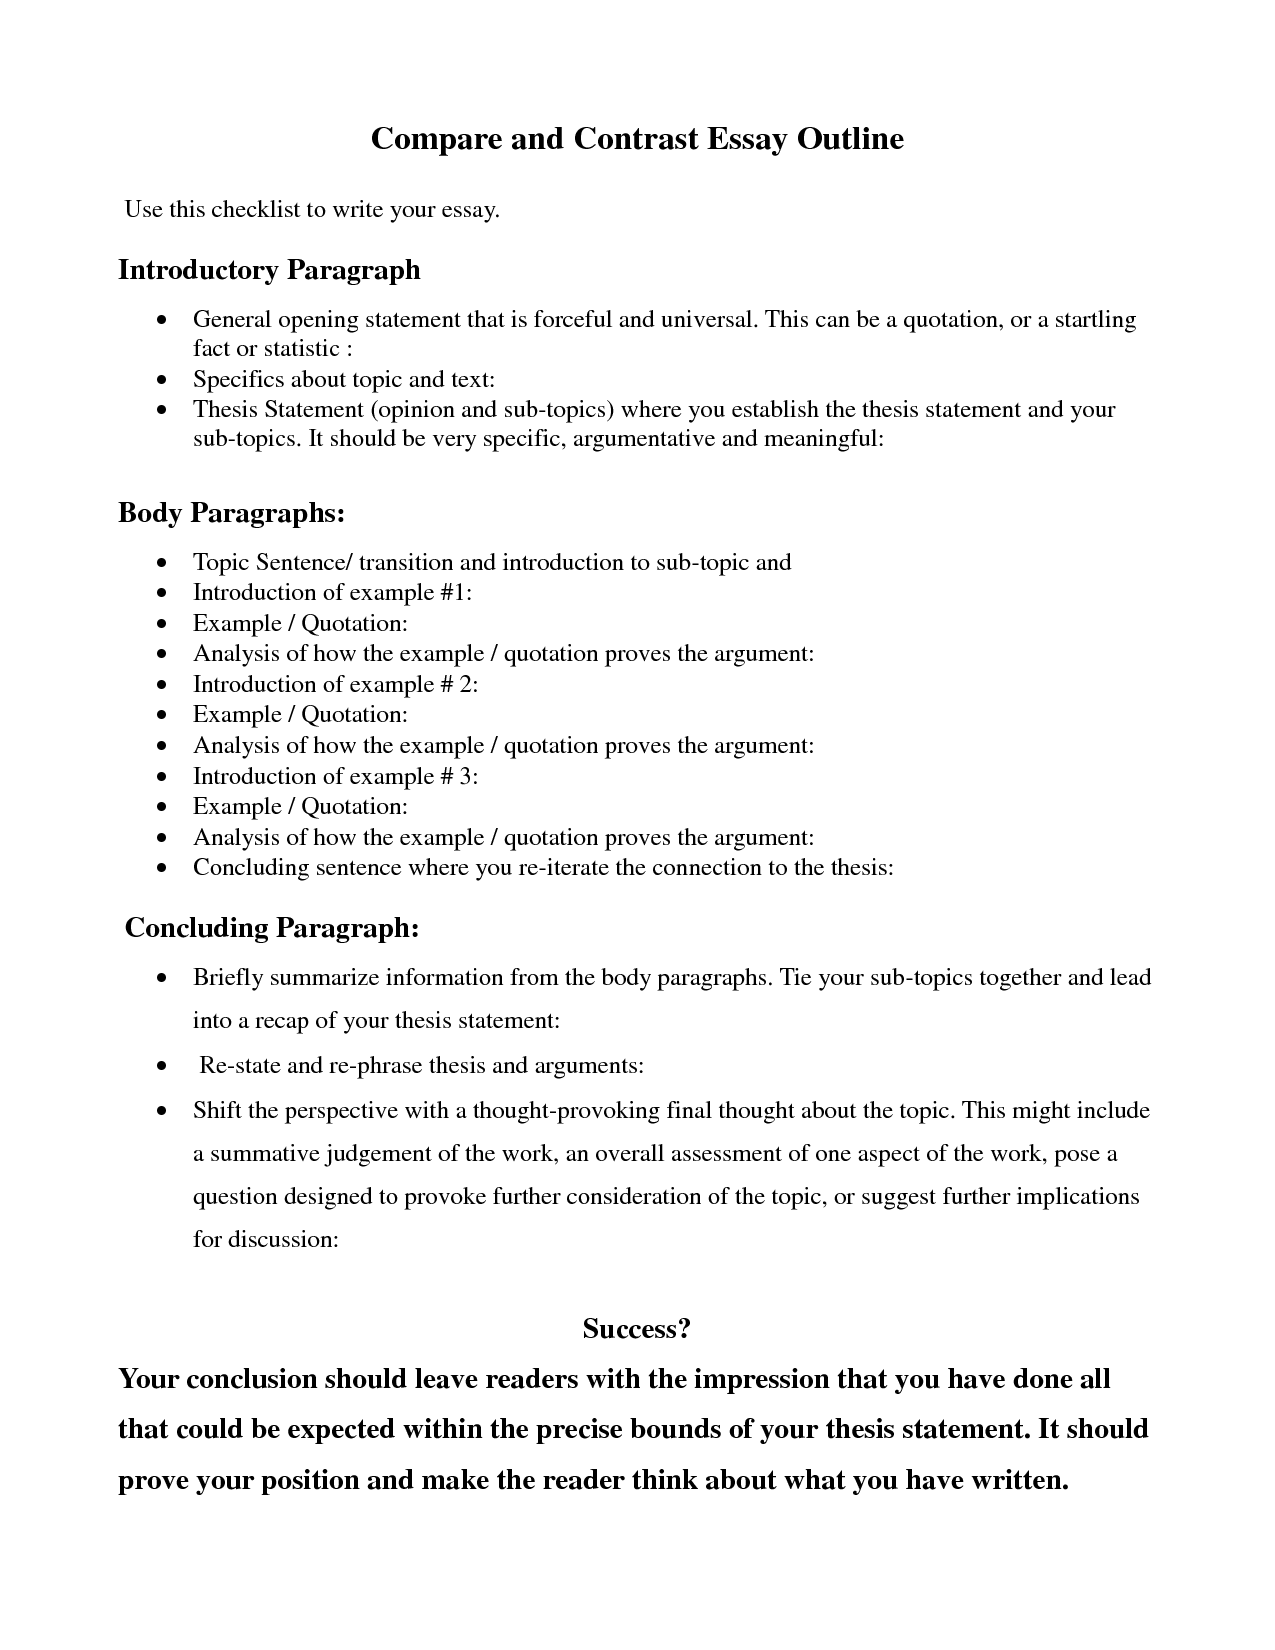 compare and contrast essay outline university This type of essay can be really confusing, as balancing between comparing and contrasting can be rather difficult check out our compare and contrast essay samples.